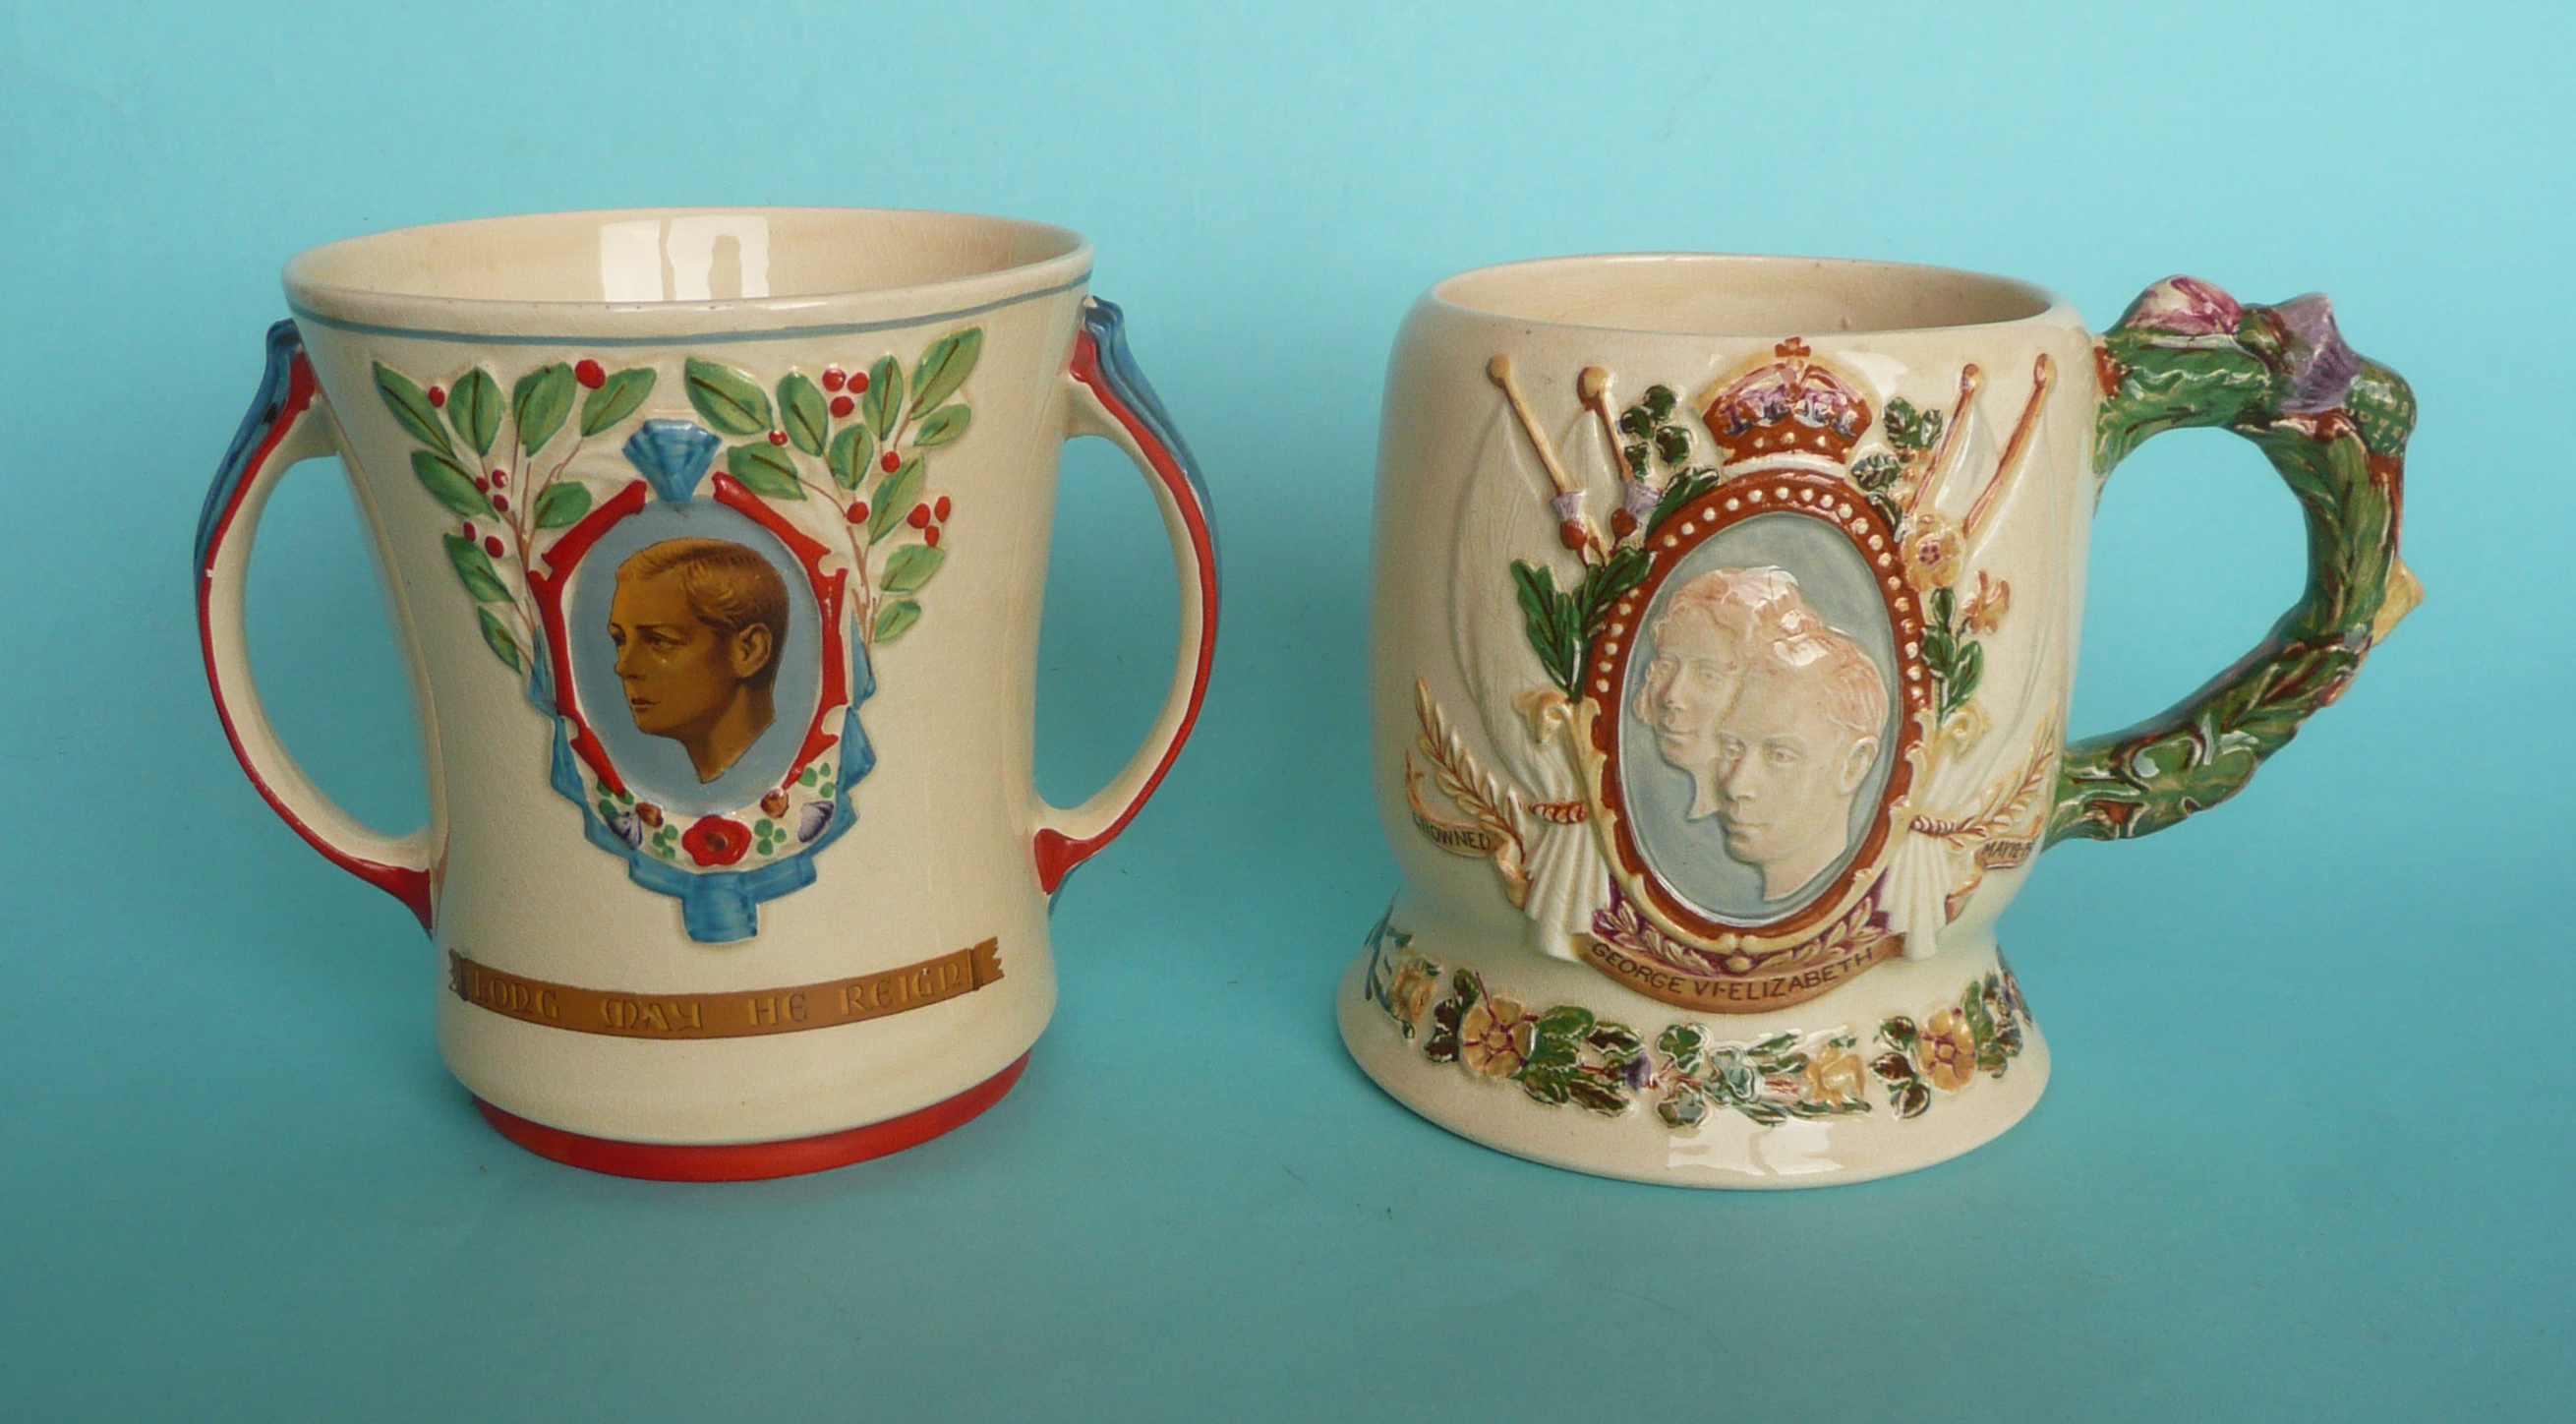 Lot 19 - A Wade Heath musical loving cup for the coronation of Edward VIII to play an unidentified air, 128mm